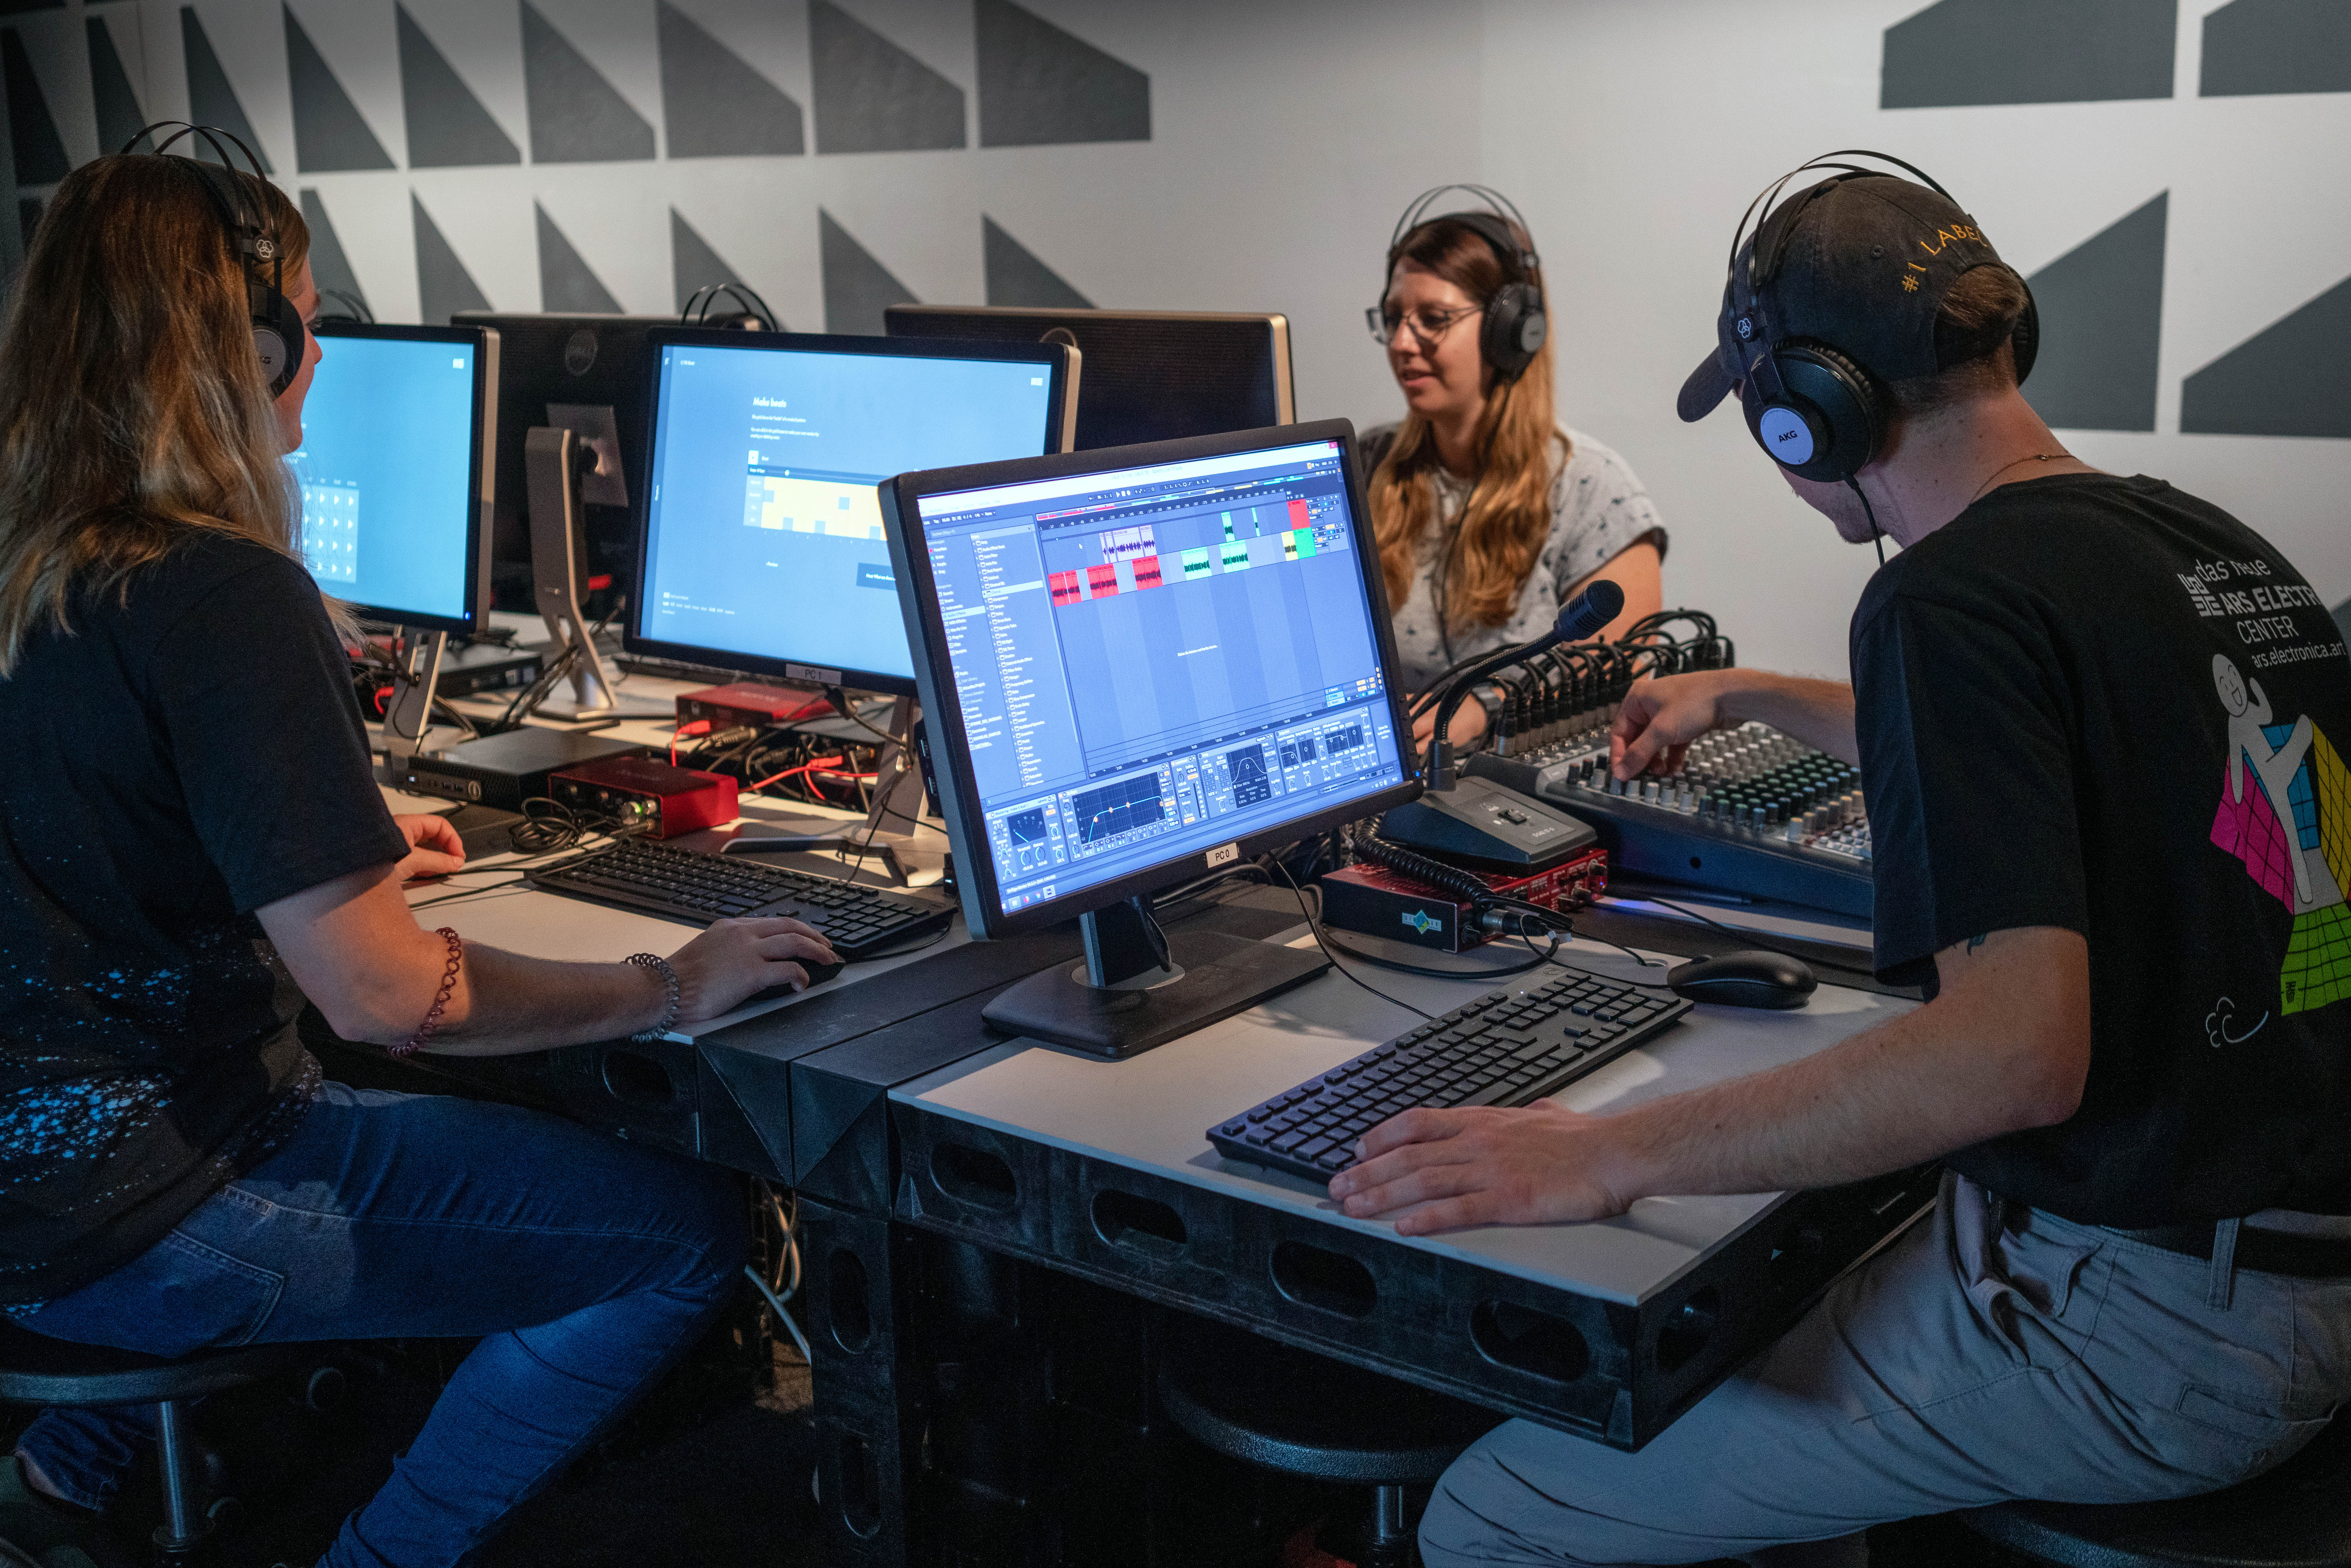 Open Soundstudio (credits: Ars Electronica / Robert Bauernhansl / Flickr Creative Commons Attribution-NonCommercial-NoDerivs 2.0 Generic (CC BY-NC-ND 2.0))